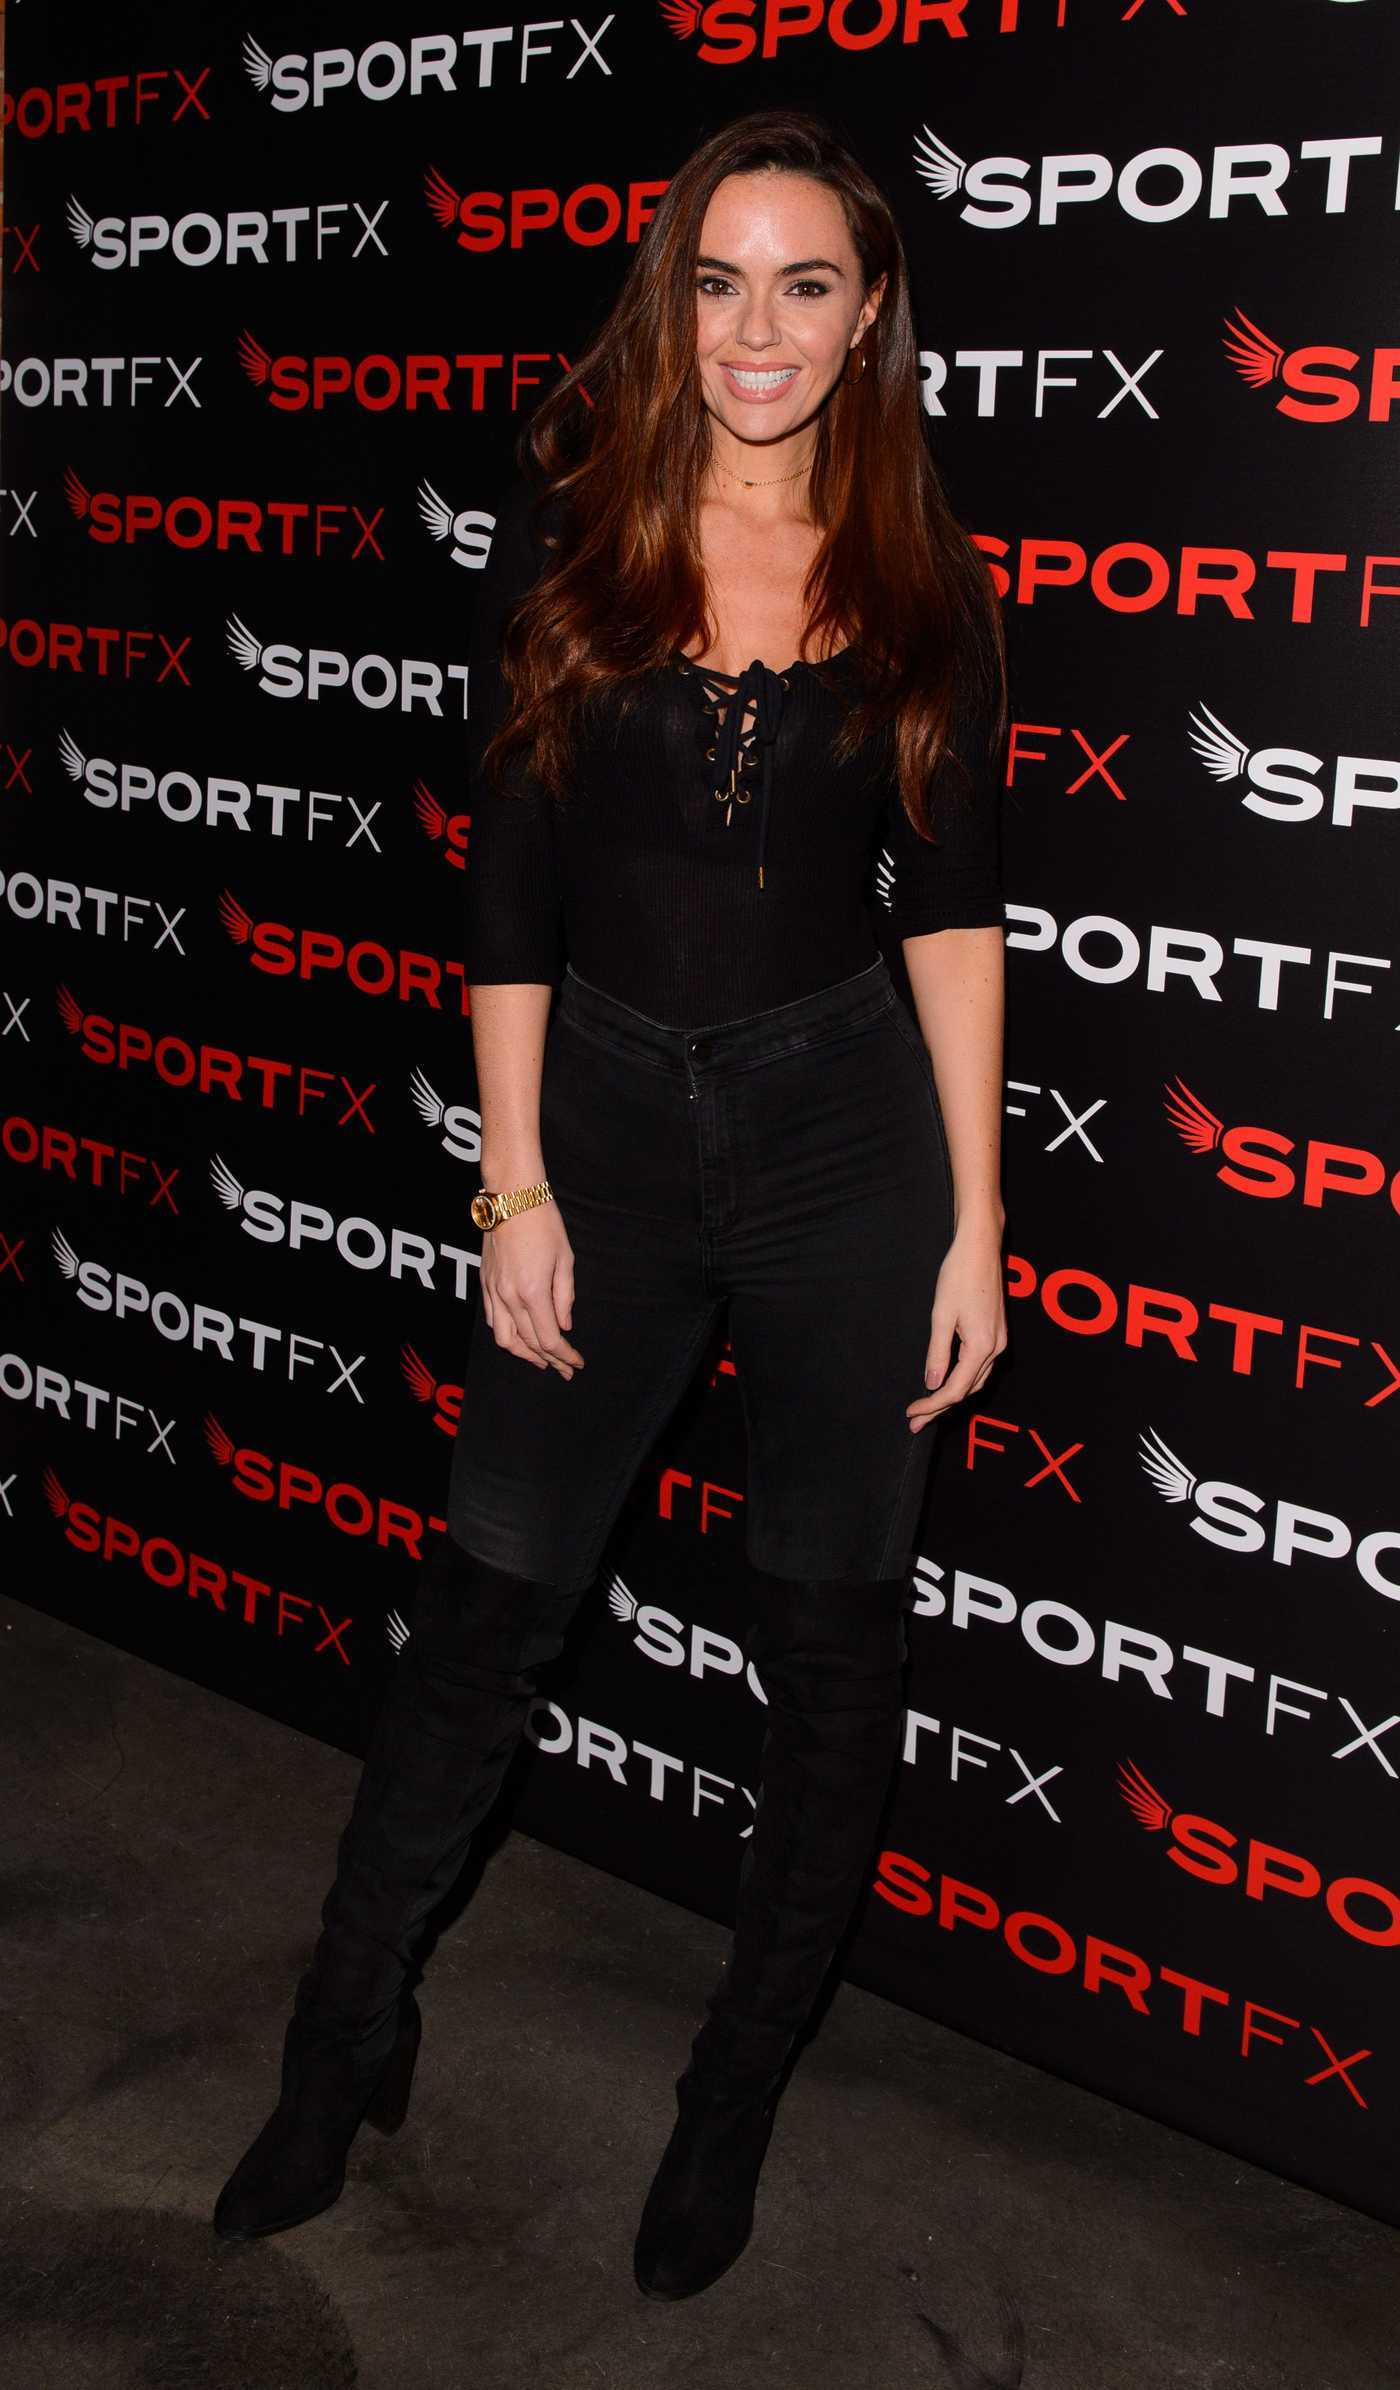 Jennifer Metcalfe at the SPORTFX Cosmetic and Sports Launch Party in London 11/10/2016